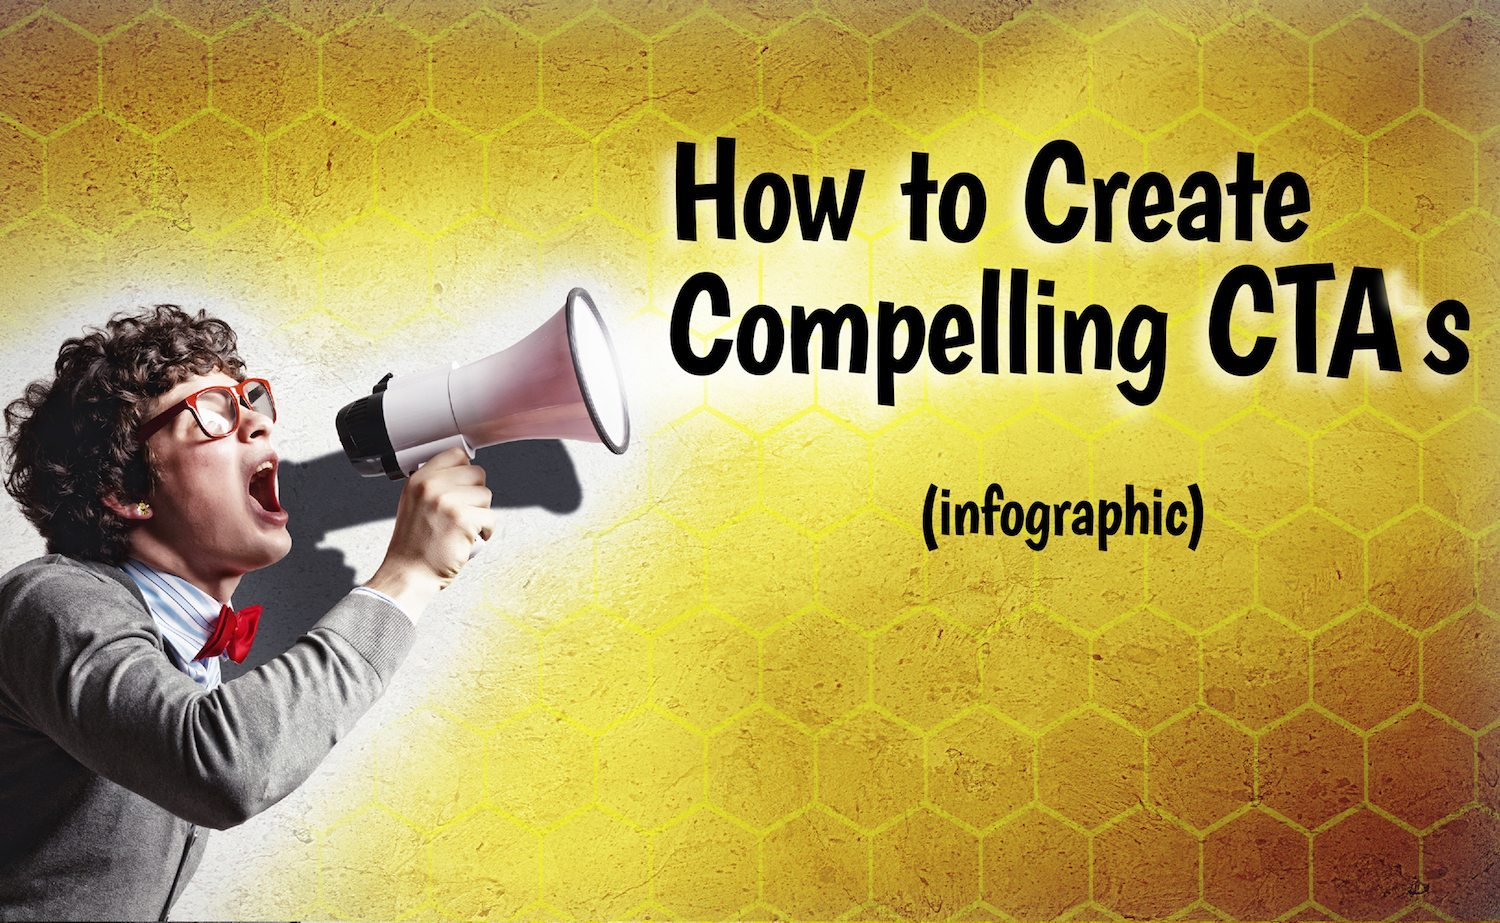 How to Create Compelling CTAs [Infographic]